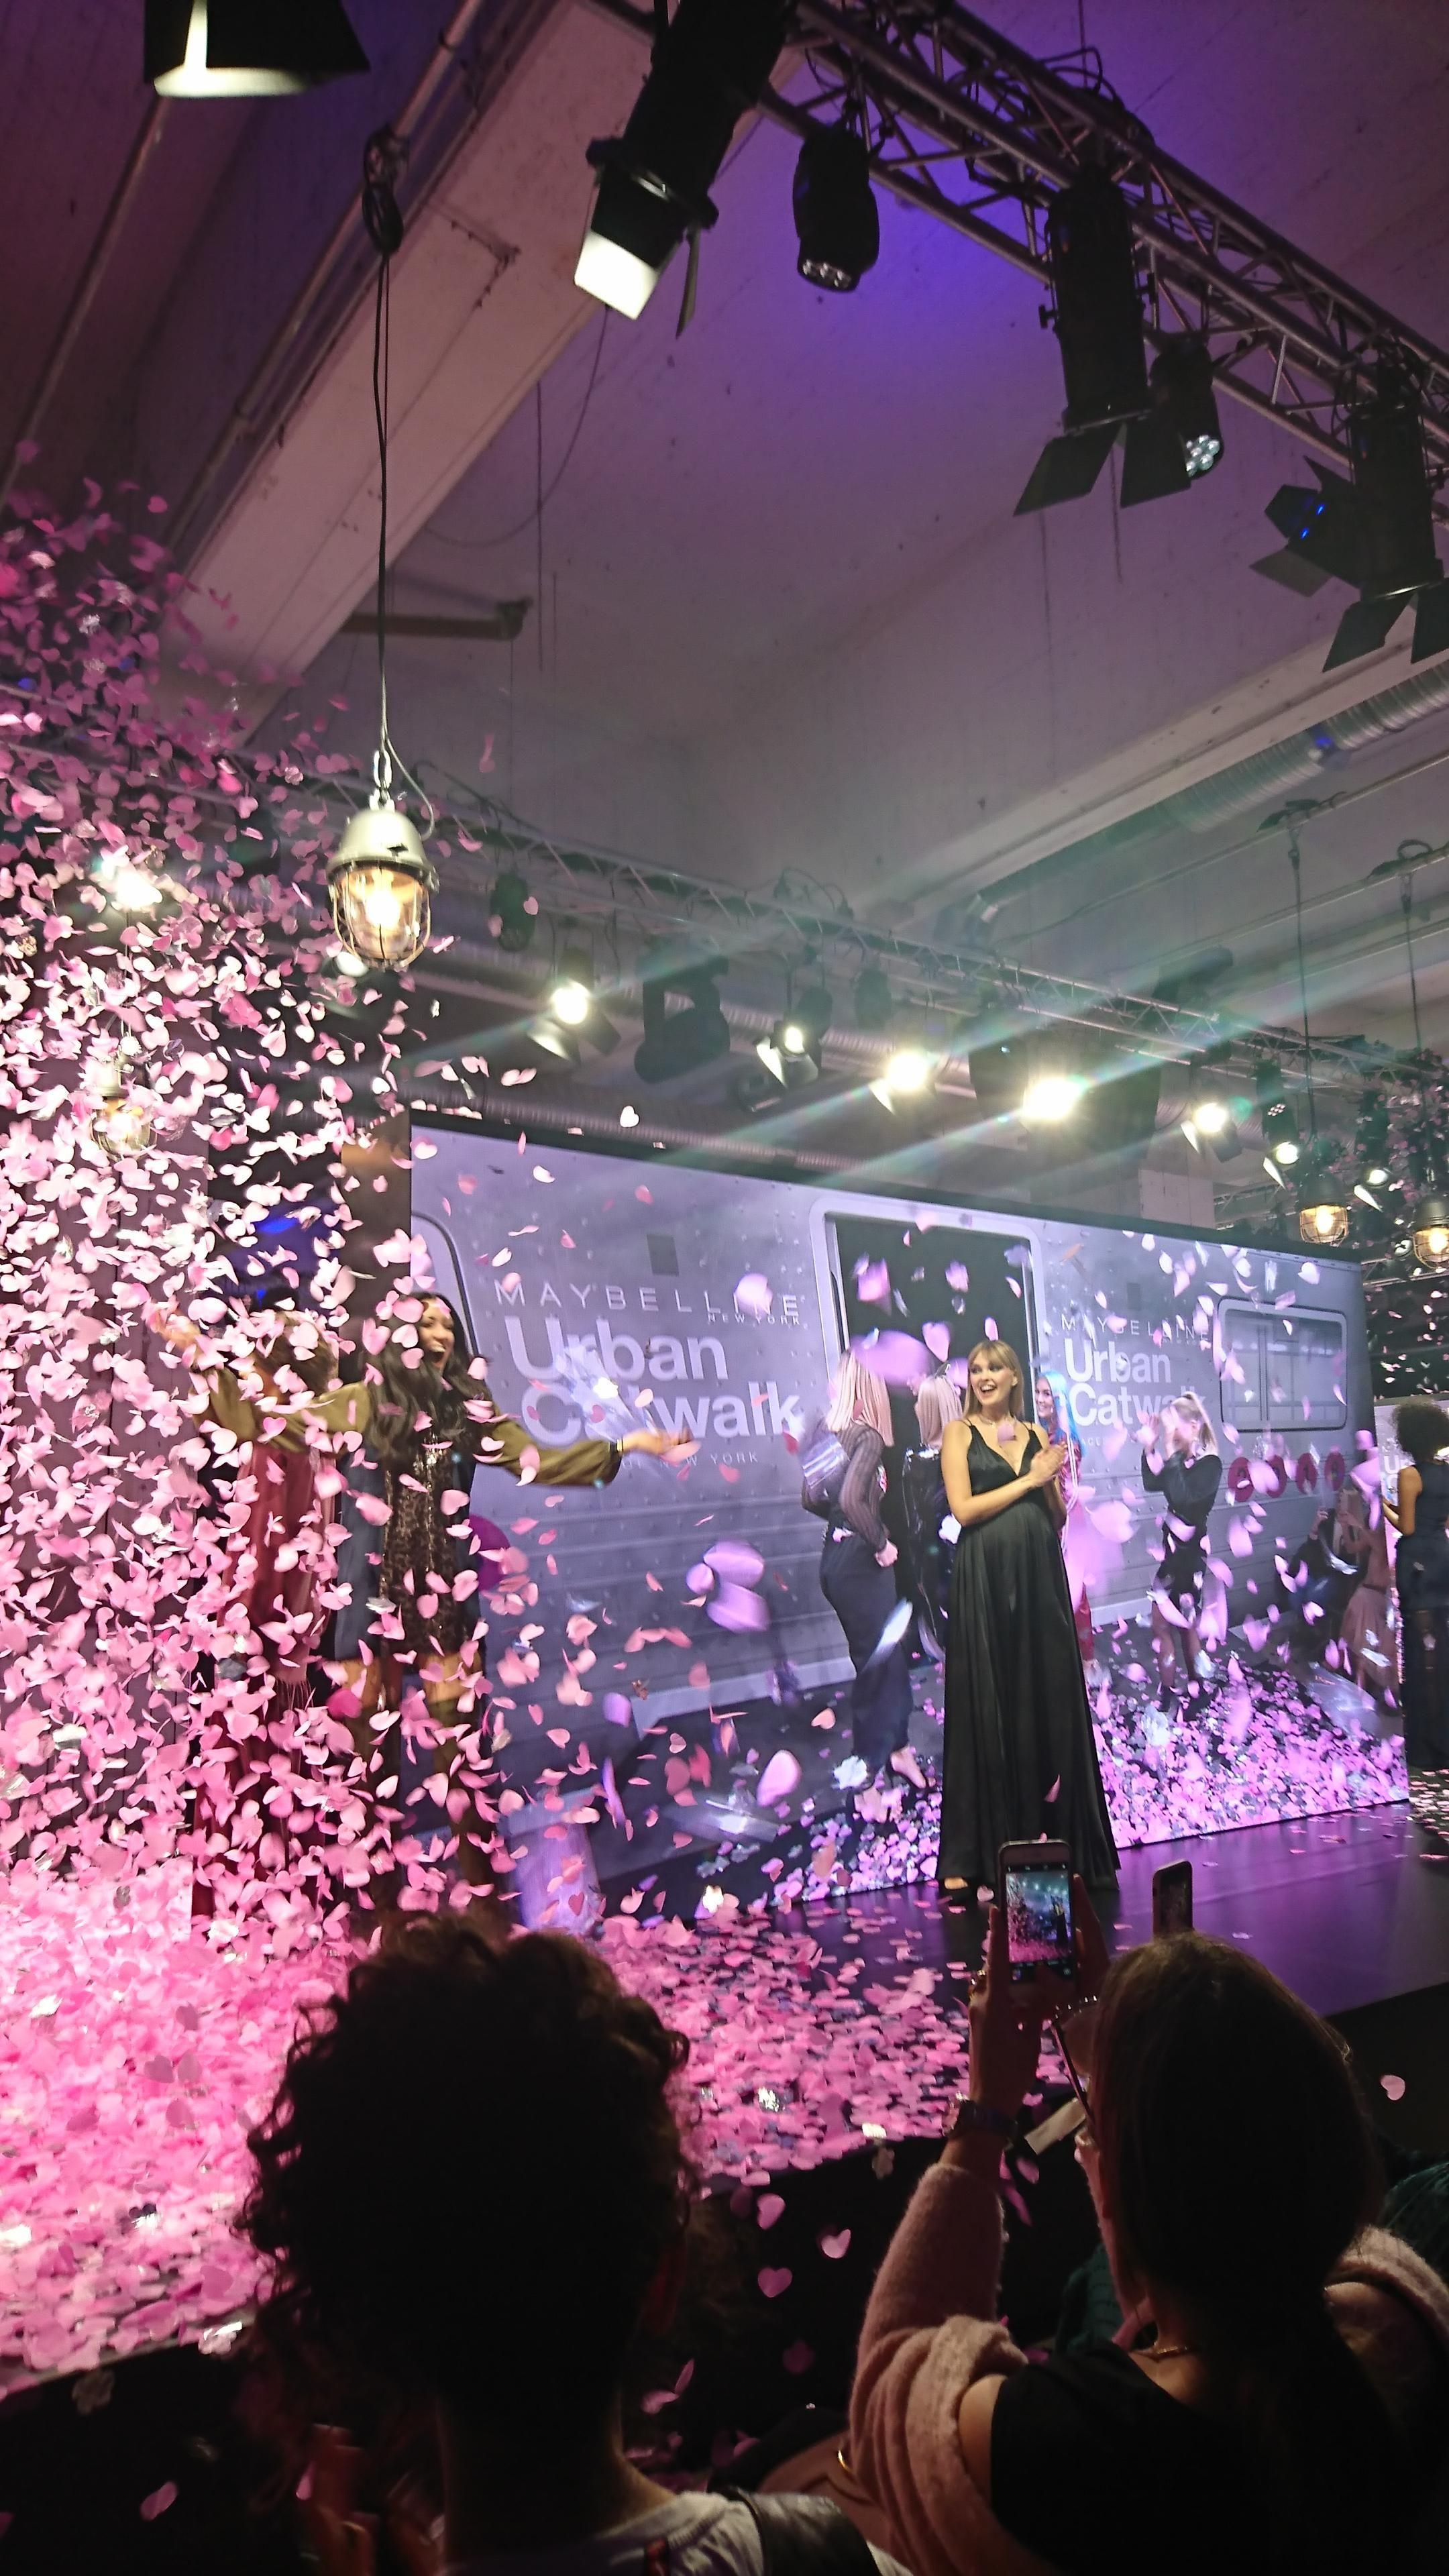 Großes Finale der Maybelline-Show in Berlin! #maybelline #berlinfashionweek #trends #urbancatwalk #makeup #party